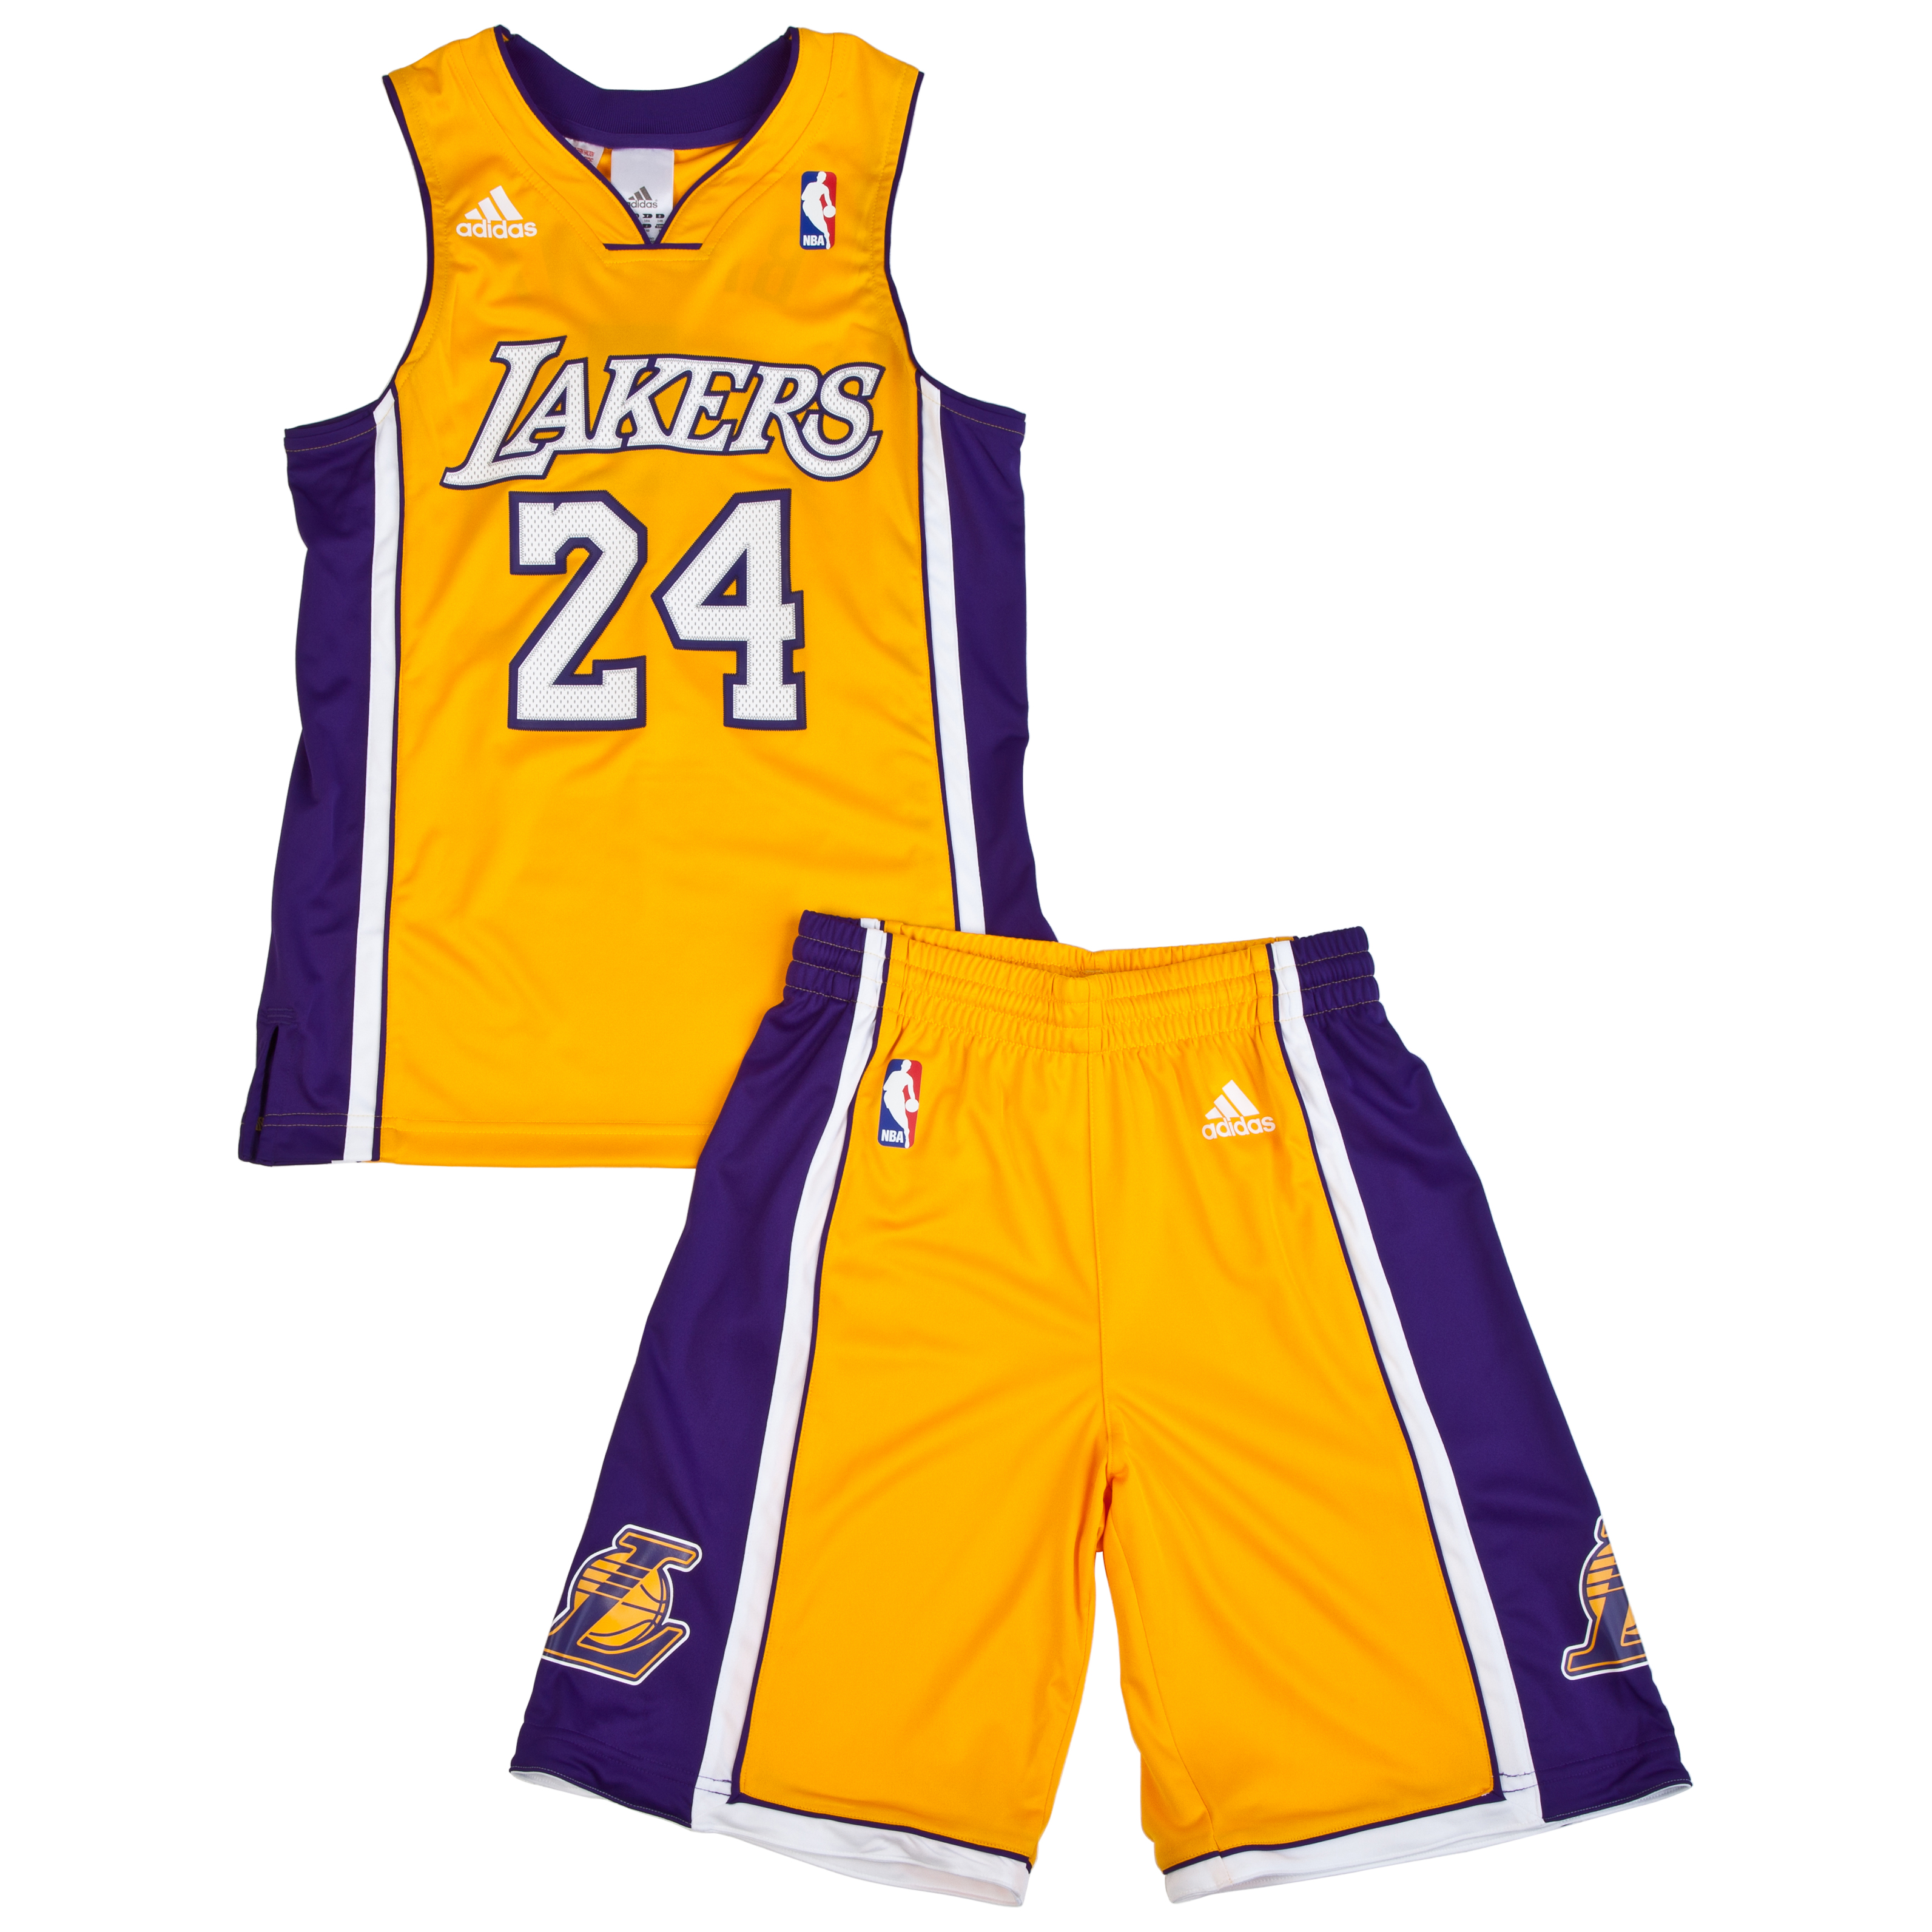 Los Angeles Lakers Home Gold Replica Jersey & Shorts - Kobe Bryant - Junior